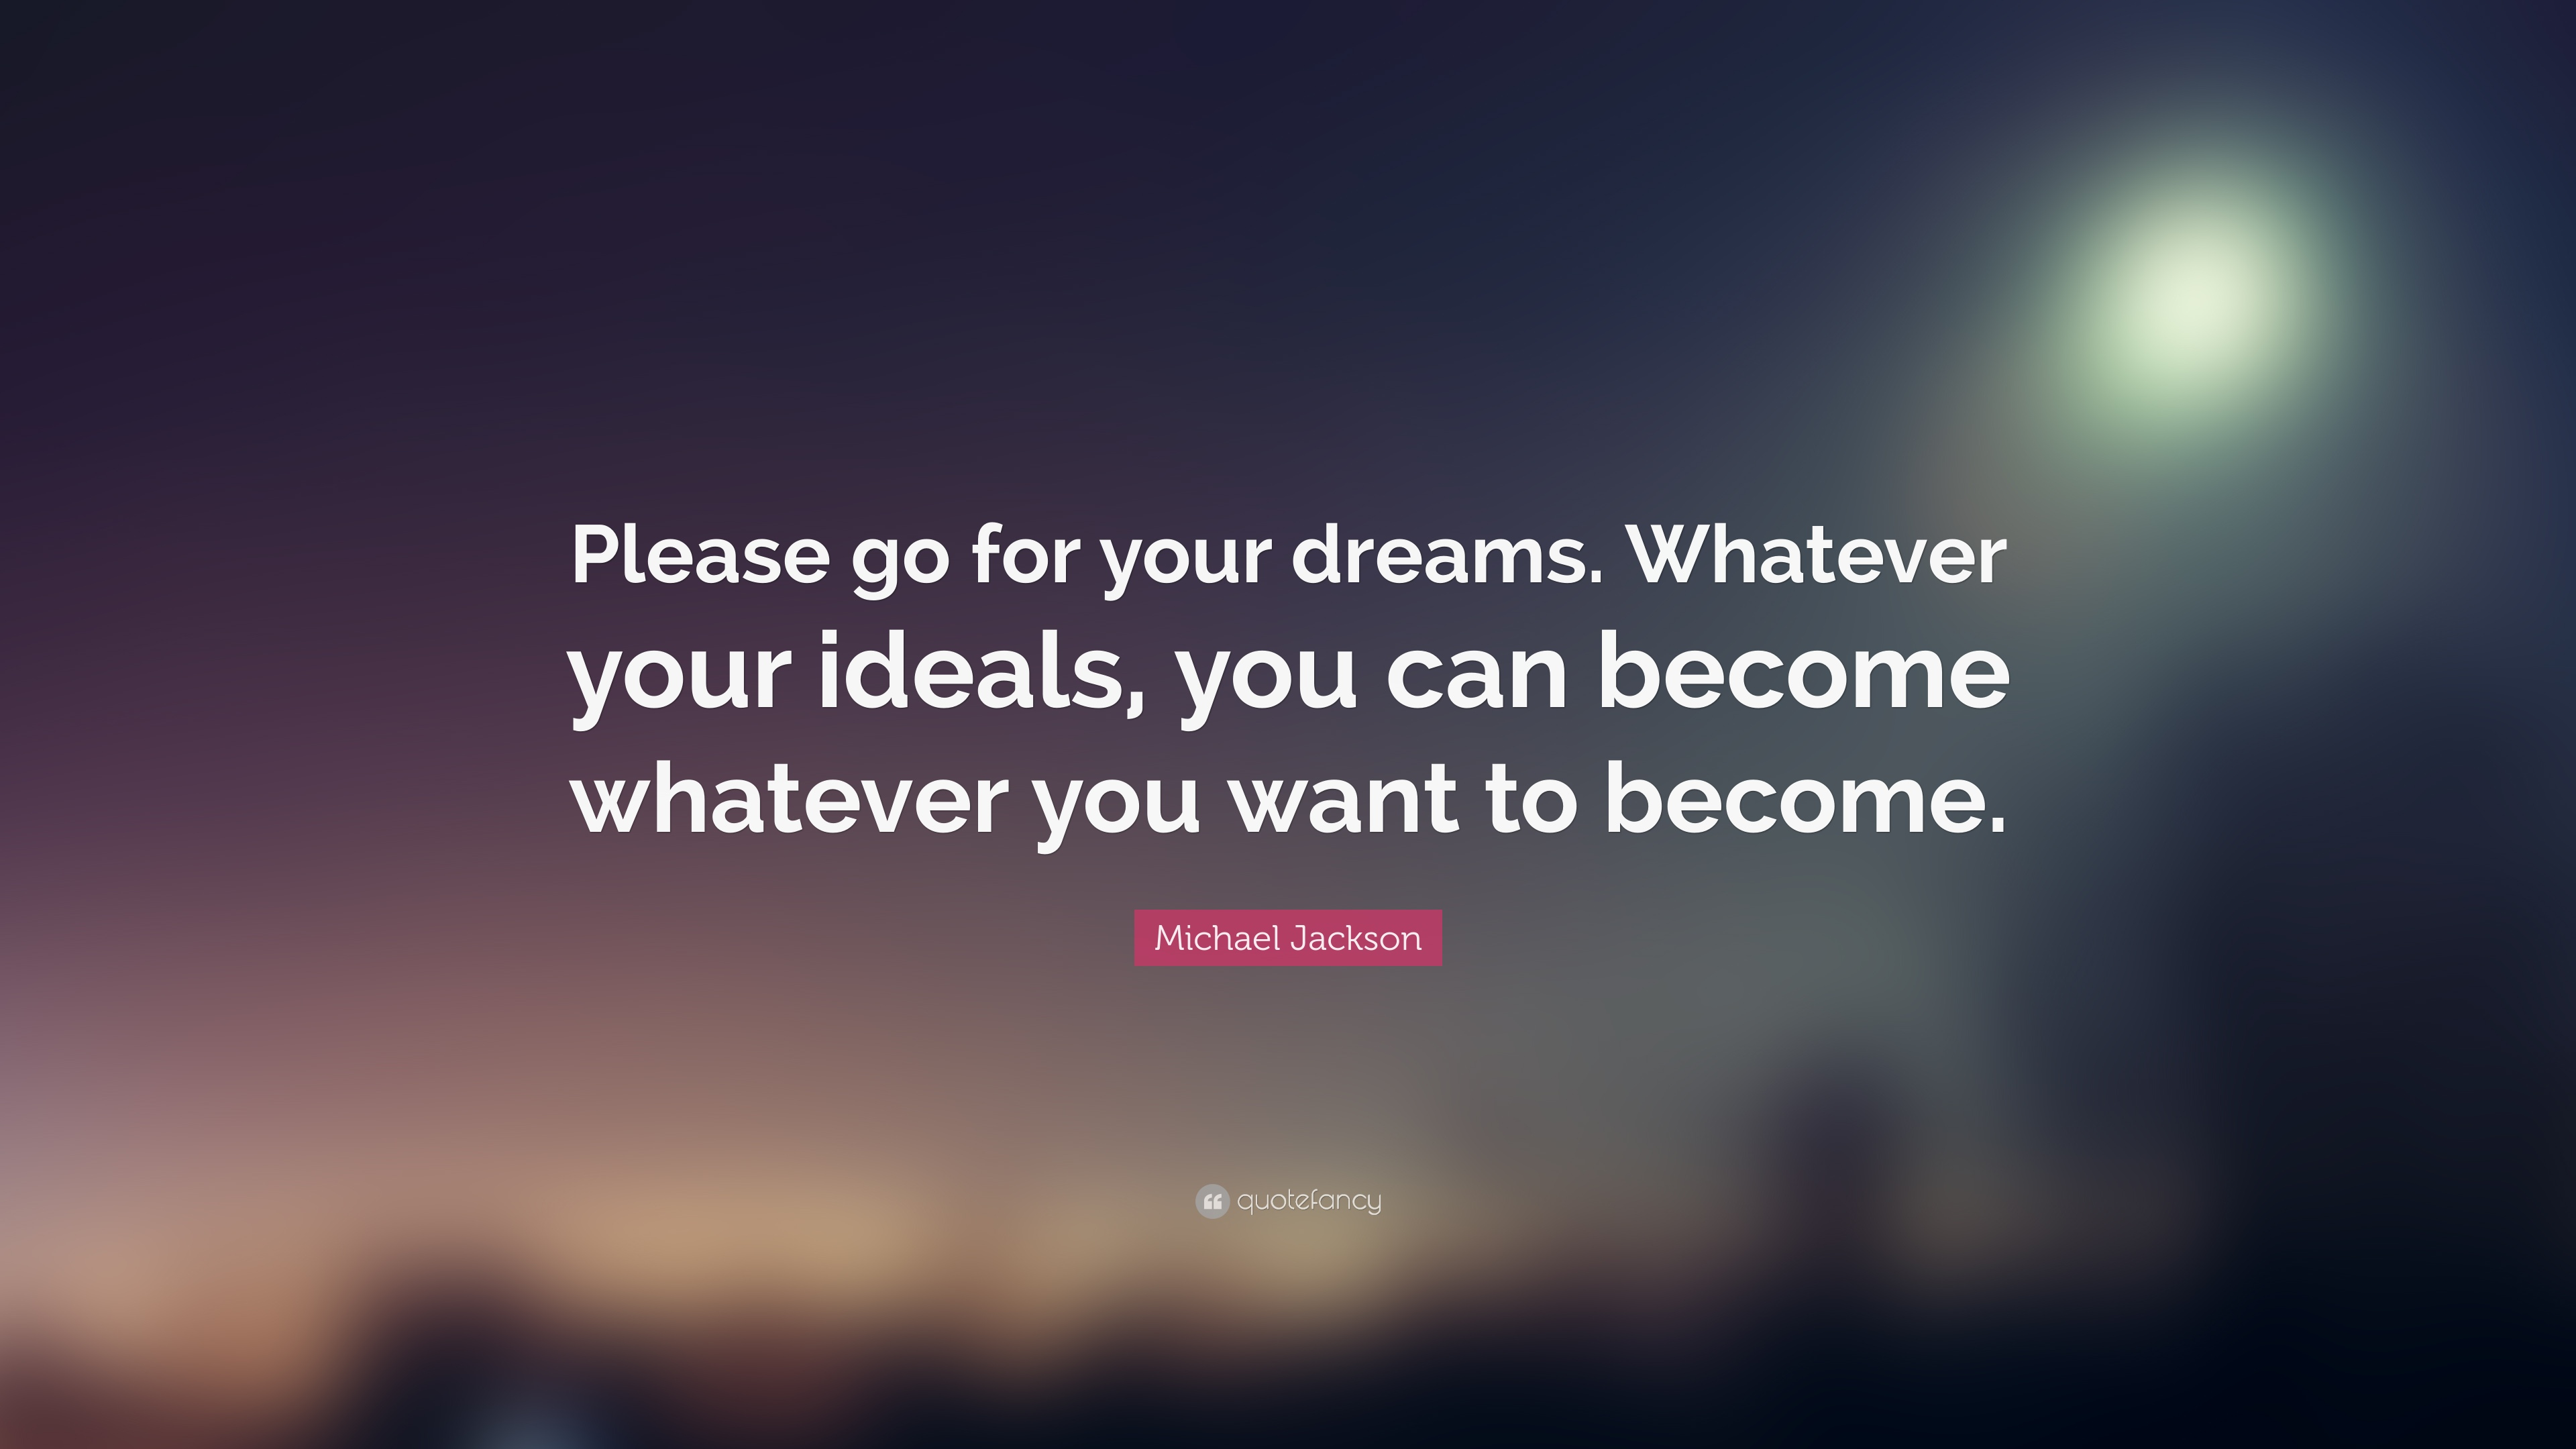 how to have whatever dream you want